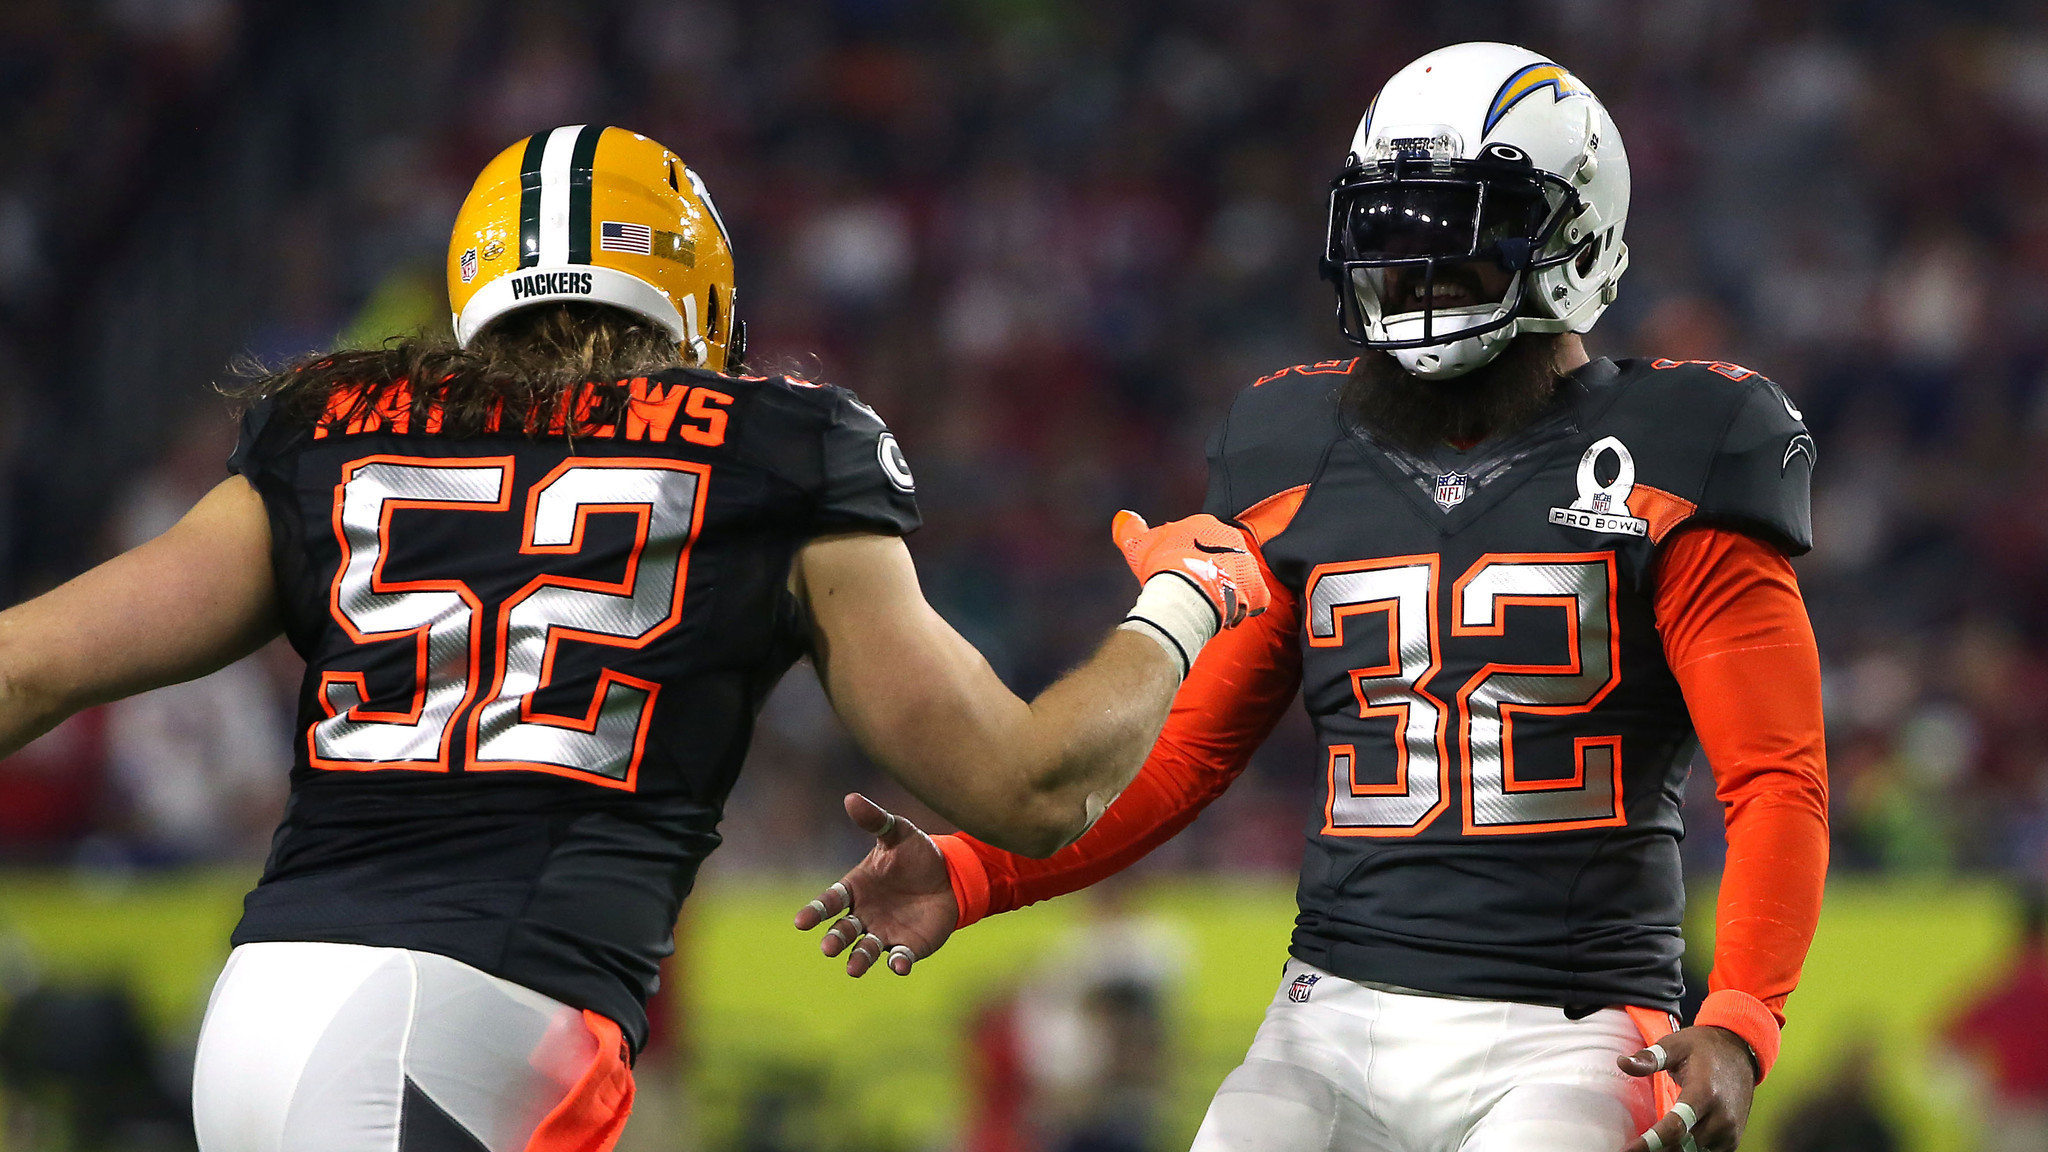 NFL mulling idea to move Pro Bowl to Brazil in 2017, report says ...